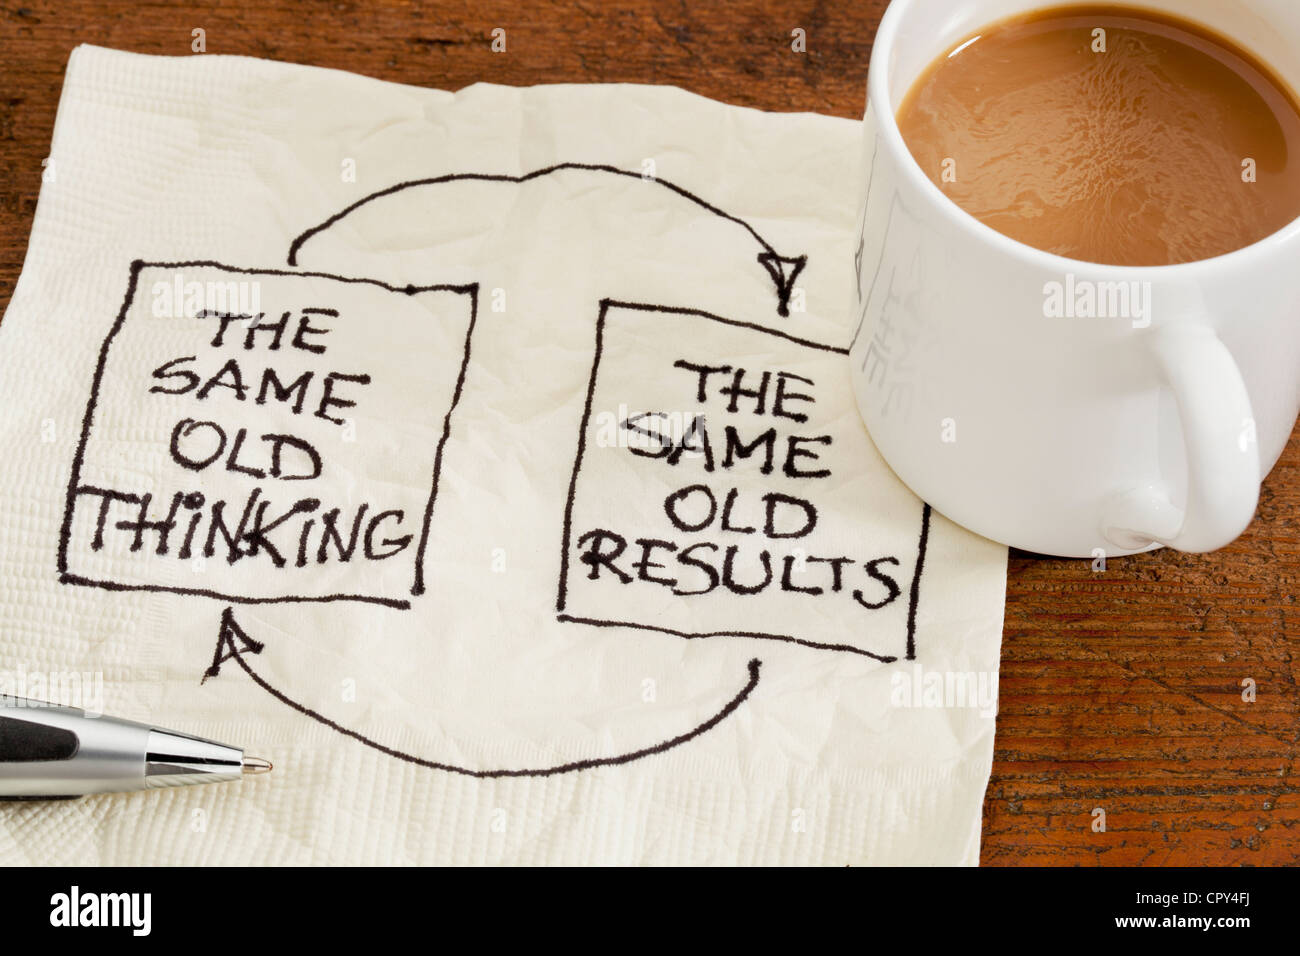 the same old thinking and disappointing results, closed loop or negative feedback mindset concept - Stock Image